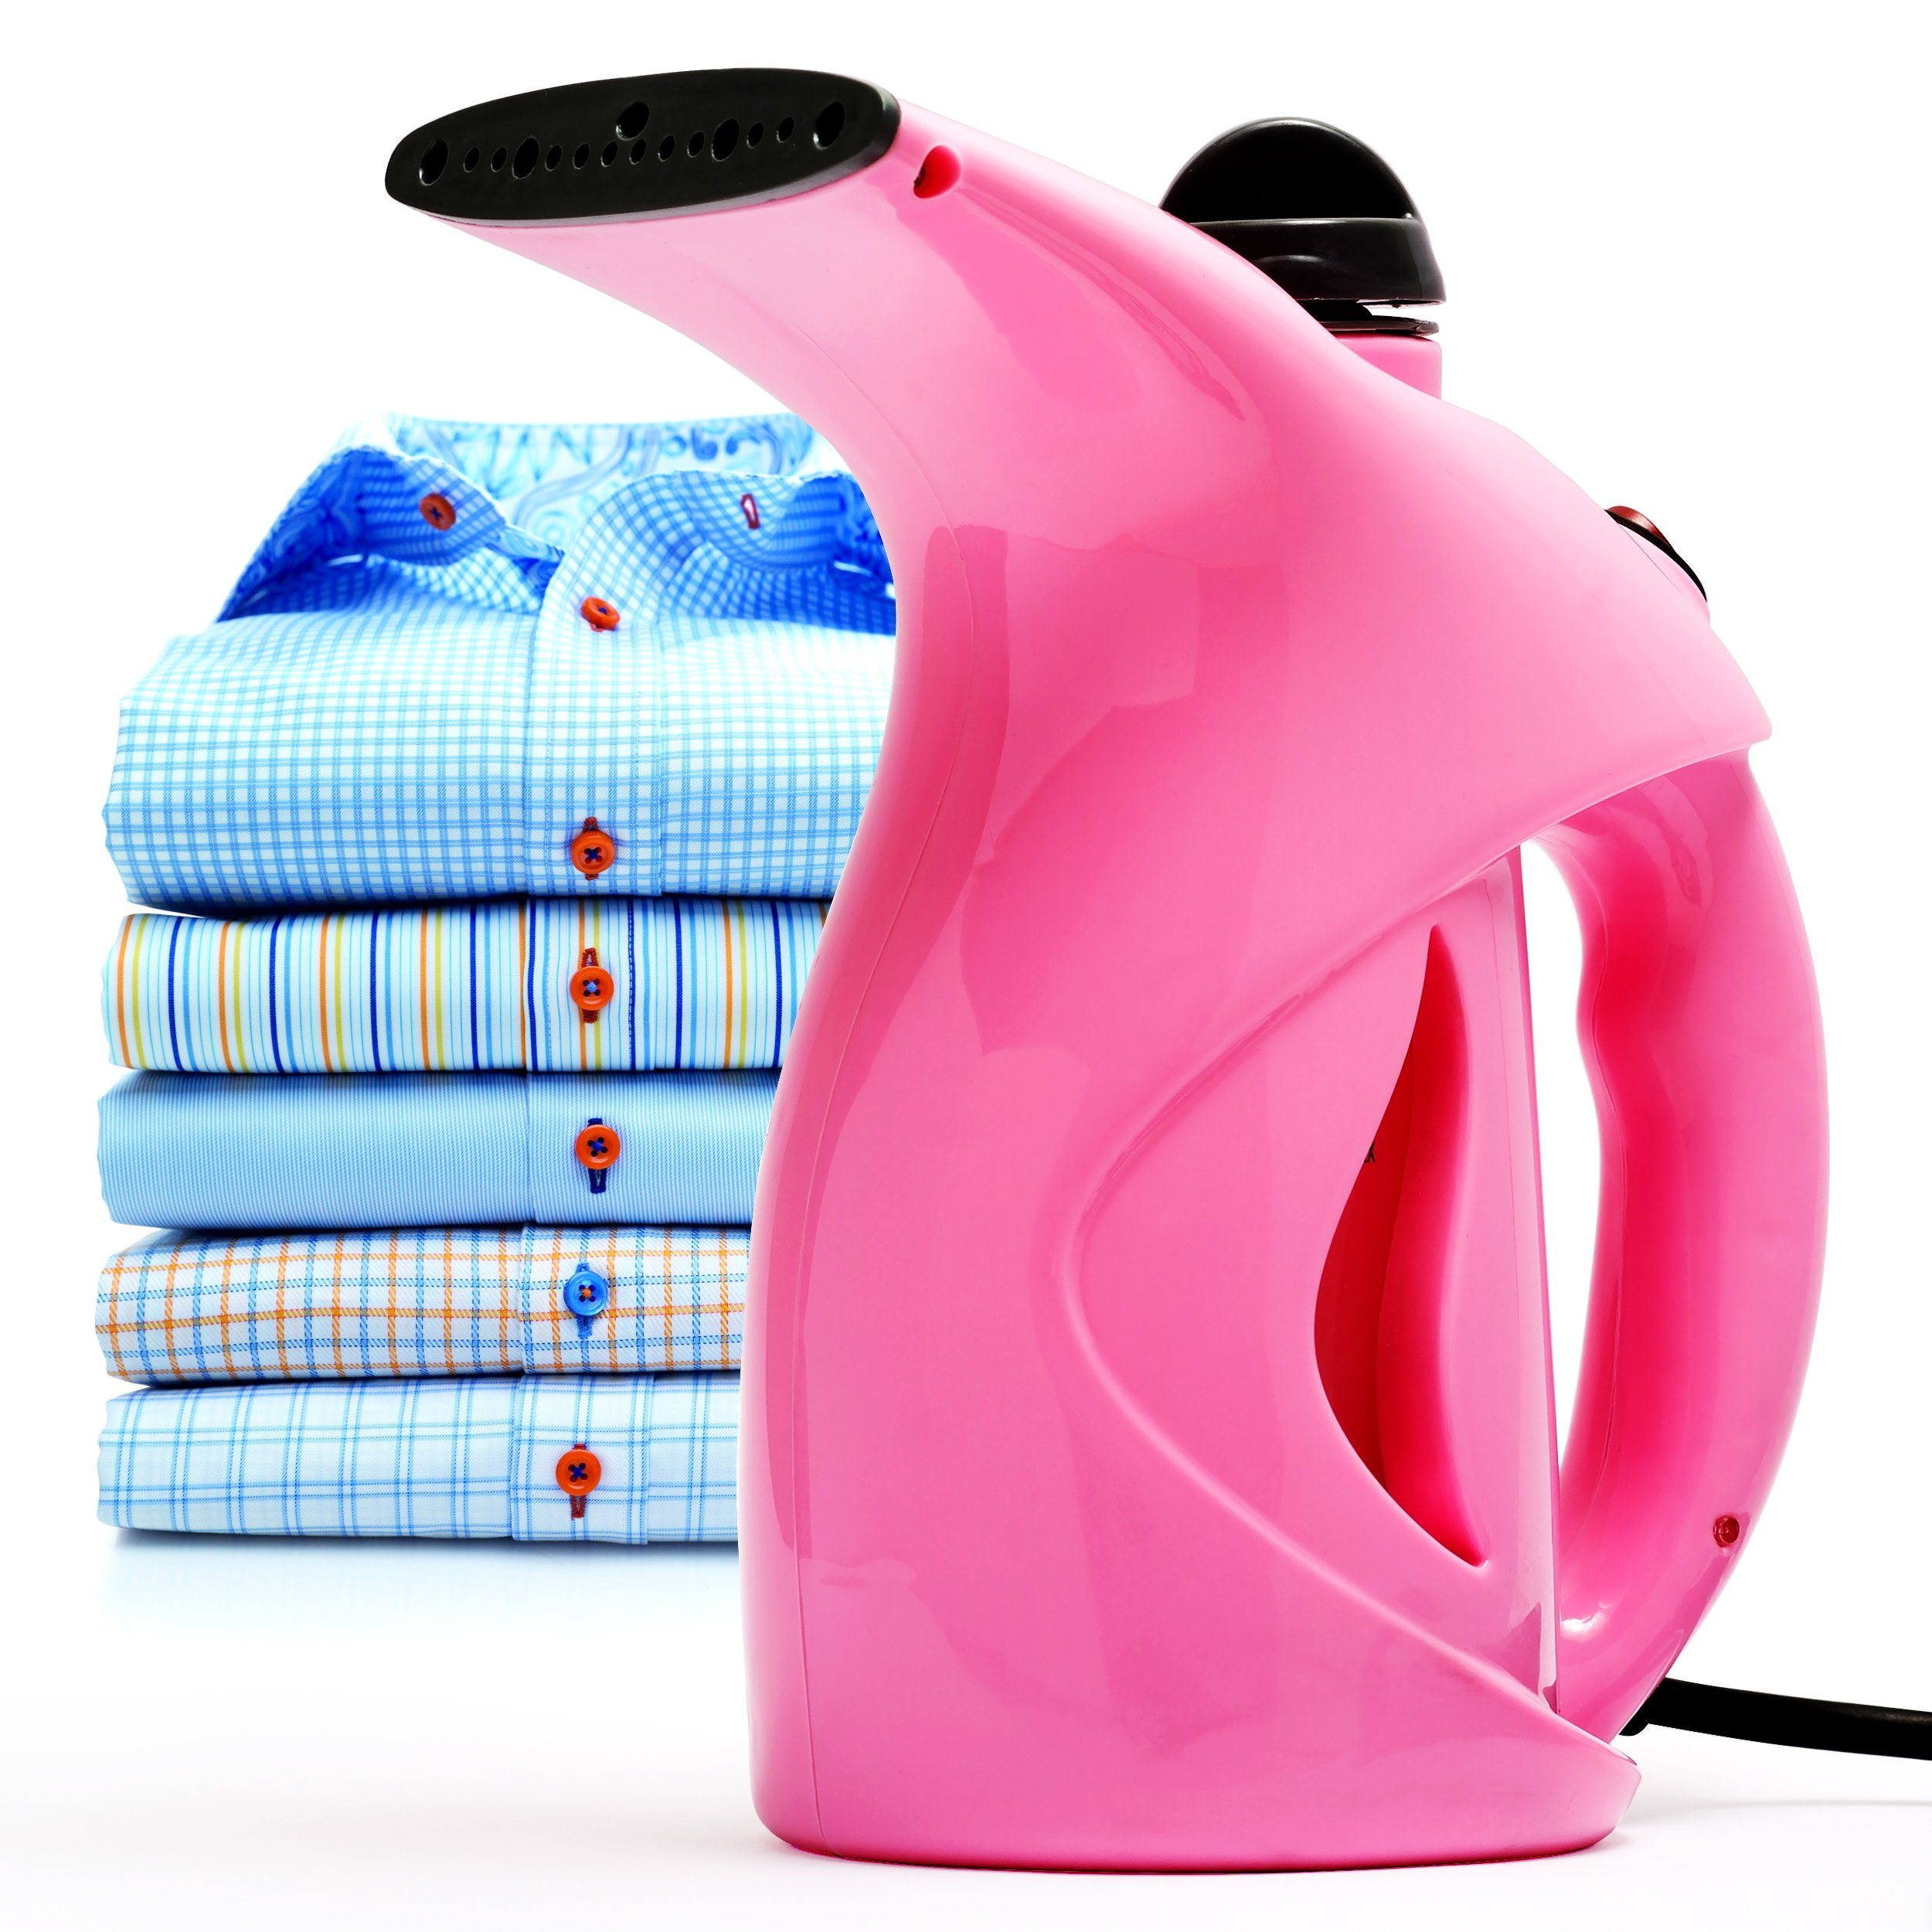 Business100 Portable Steamer, 200ML Portable Garment Steamer, Steamer for Clothes, Heat-up Premium Fabric Steam Cleaner, Safe, Lightweight & Perfect Clothing Steamer for Travel Home by Business100 (Image #9)